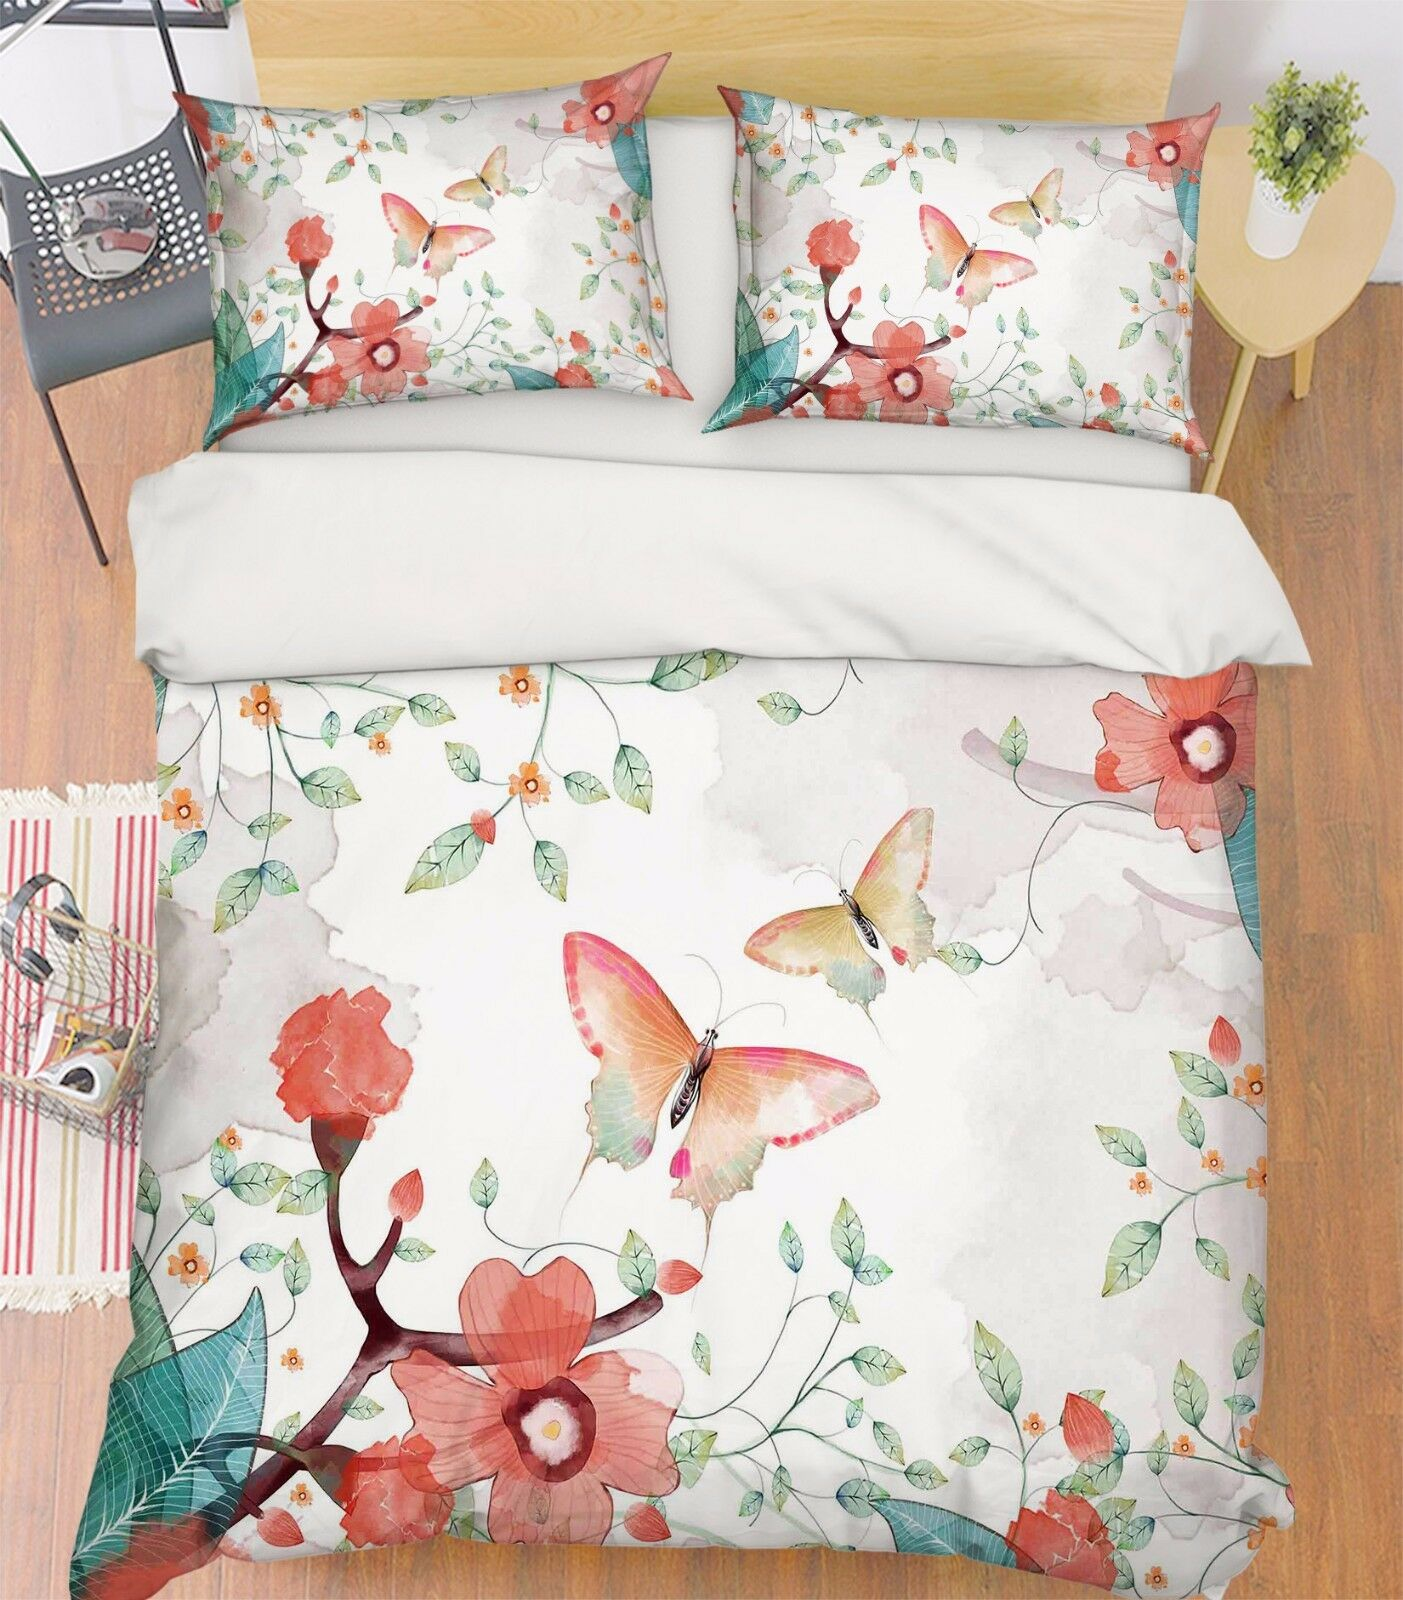 3D Butterfly 814 Bed Pillowcases Quilt Duvet Cover Set Single Queen UK Carly